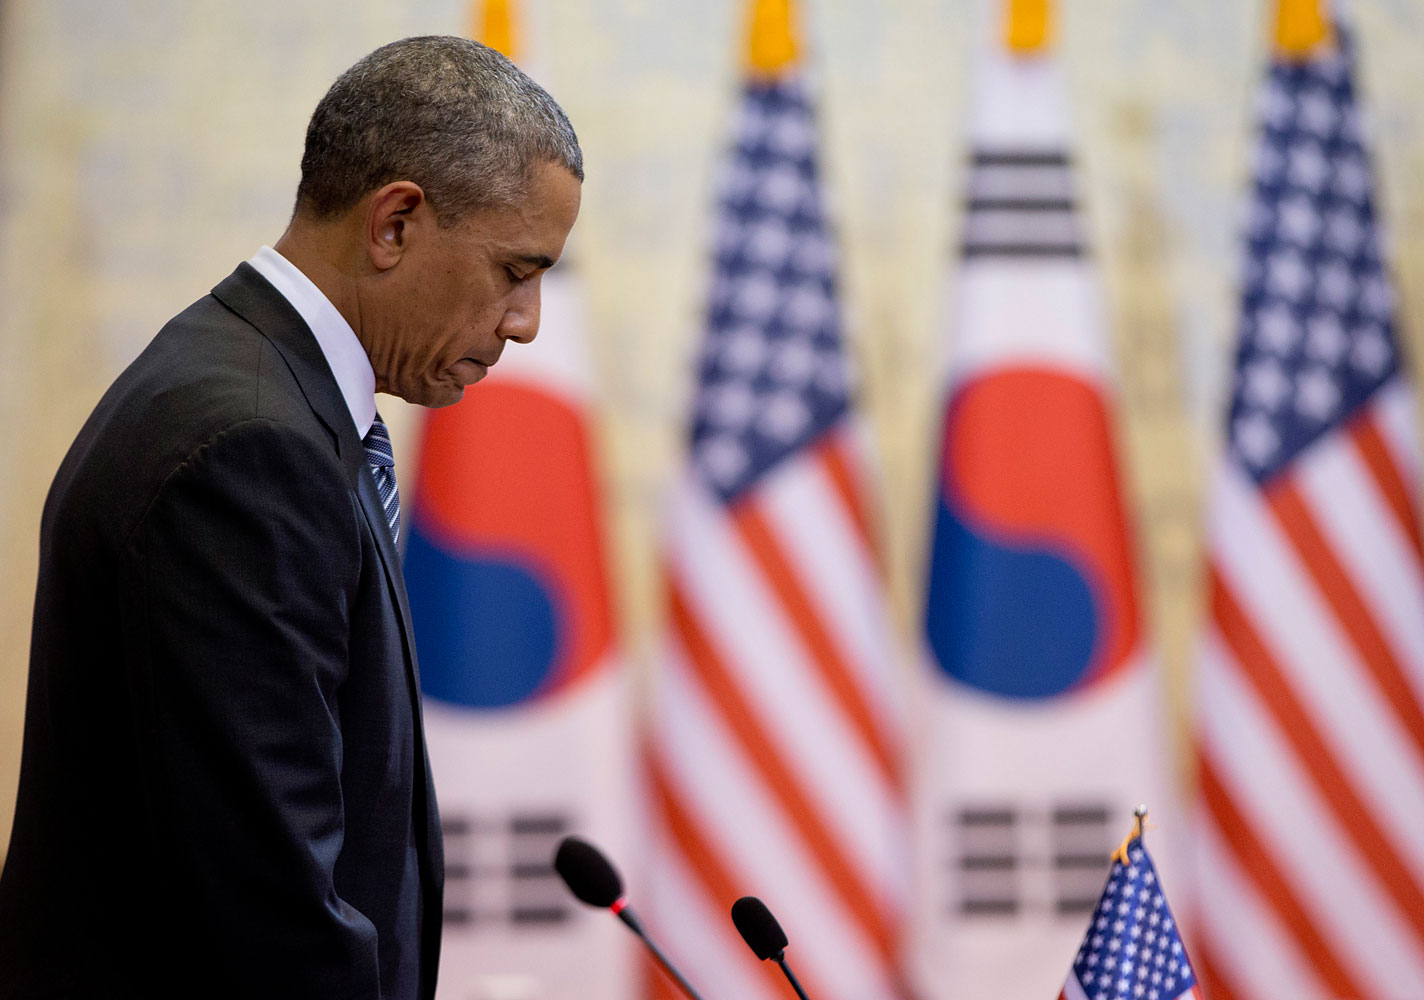 President Obama pauses for a moment of silence for those who died in the ferry disaster as Obama and South Korean President Park Geun-hye, participate in the bilateral meetings at the Blue House, April 25, 2014, in Seoul.